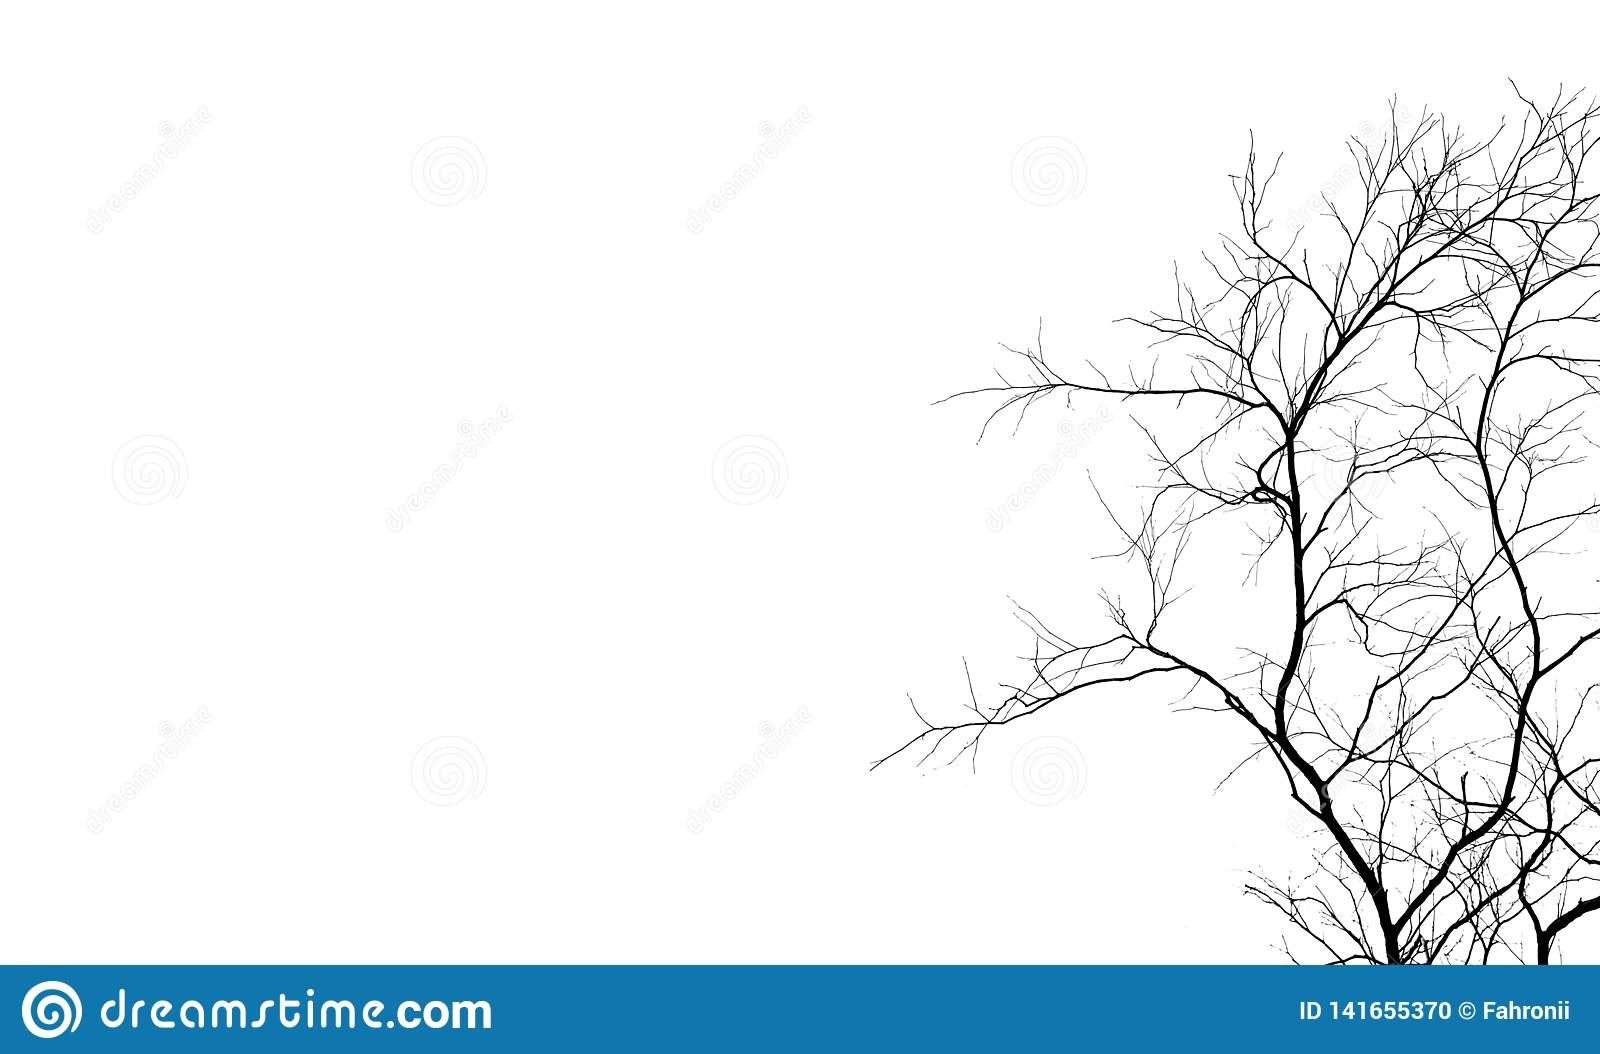 Silhouette Dead Tree And Branch Isolated On White Background Black